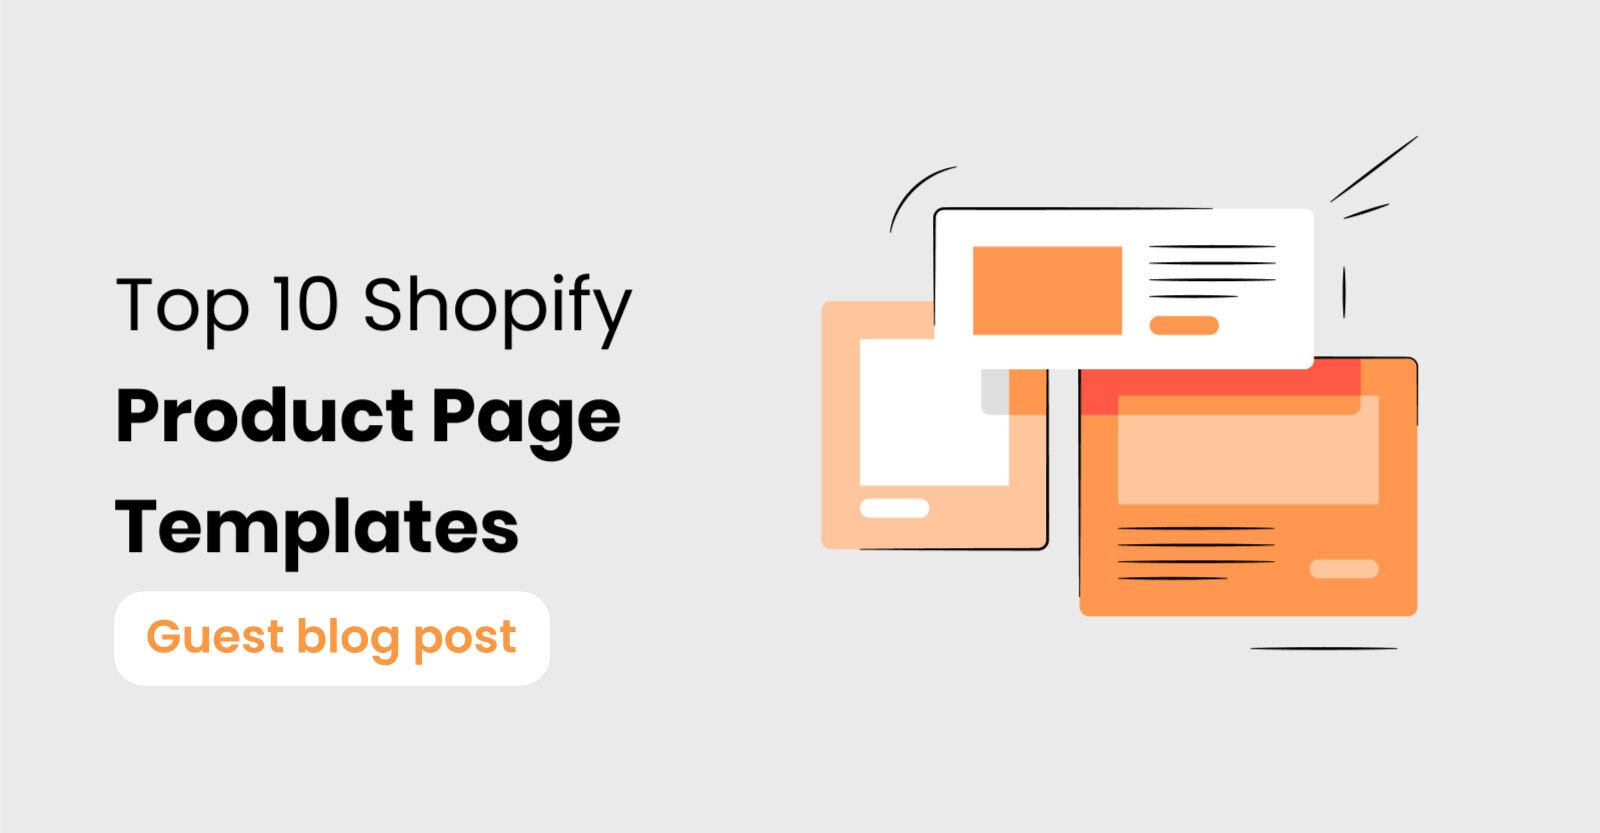 Top 10 Shopify Product Page Templates to Kick-Start Selling on your Store (Mostly Free!)